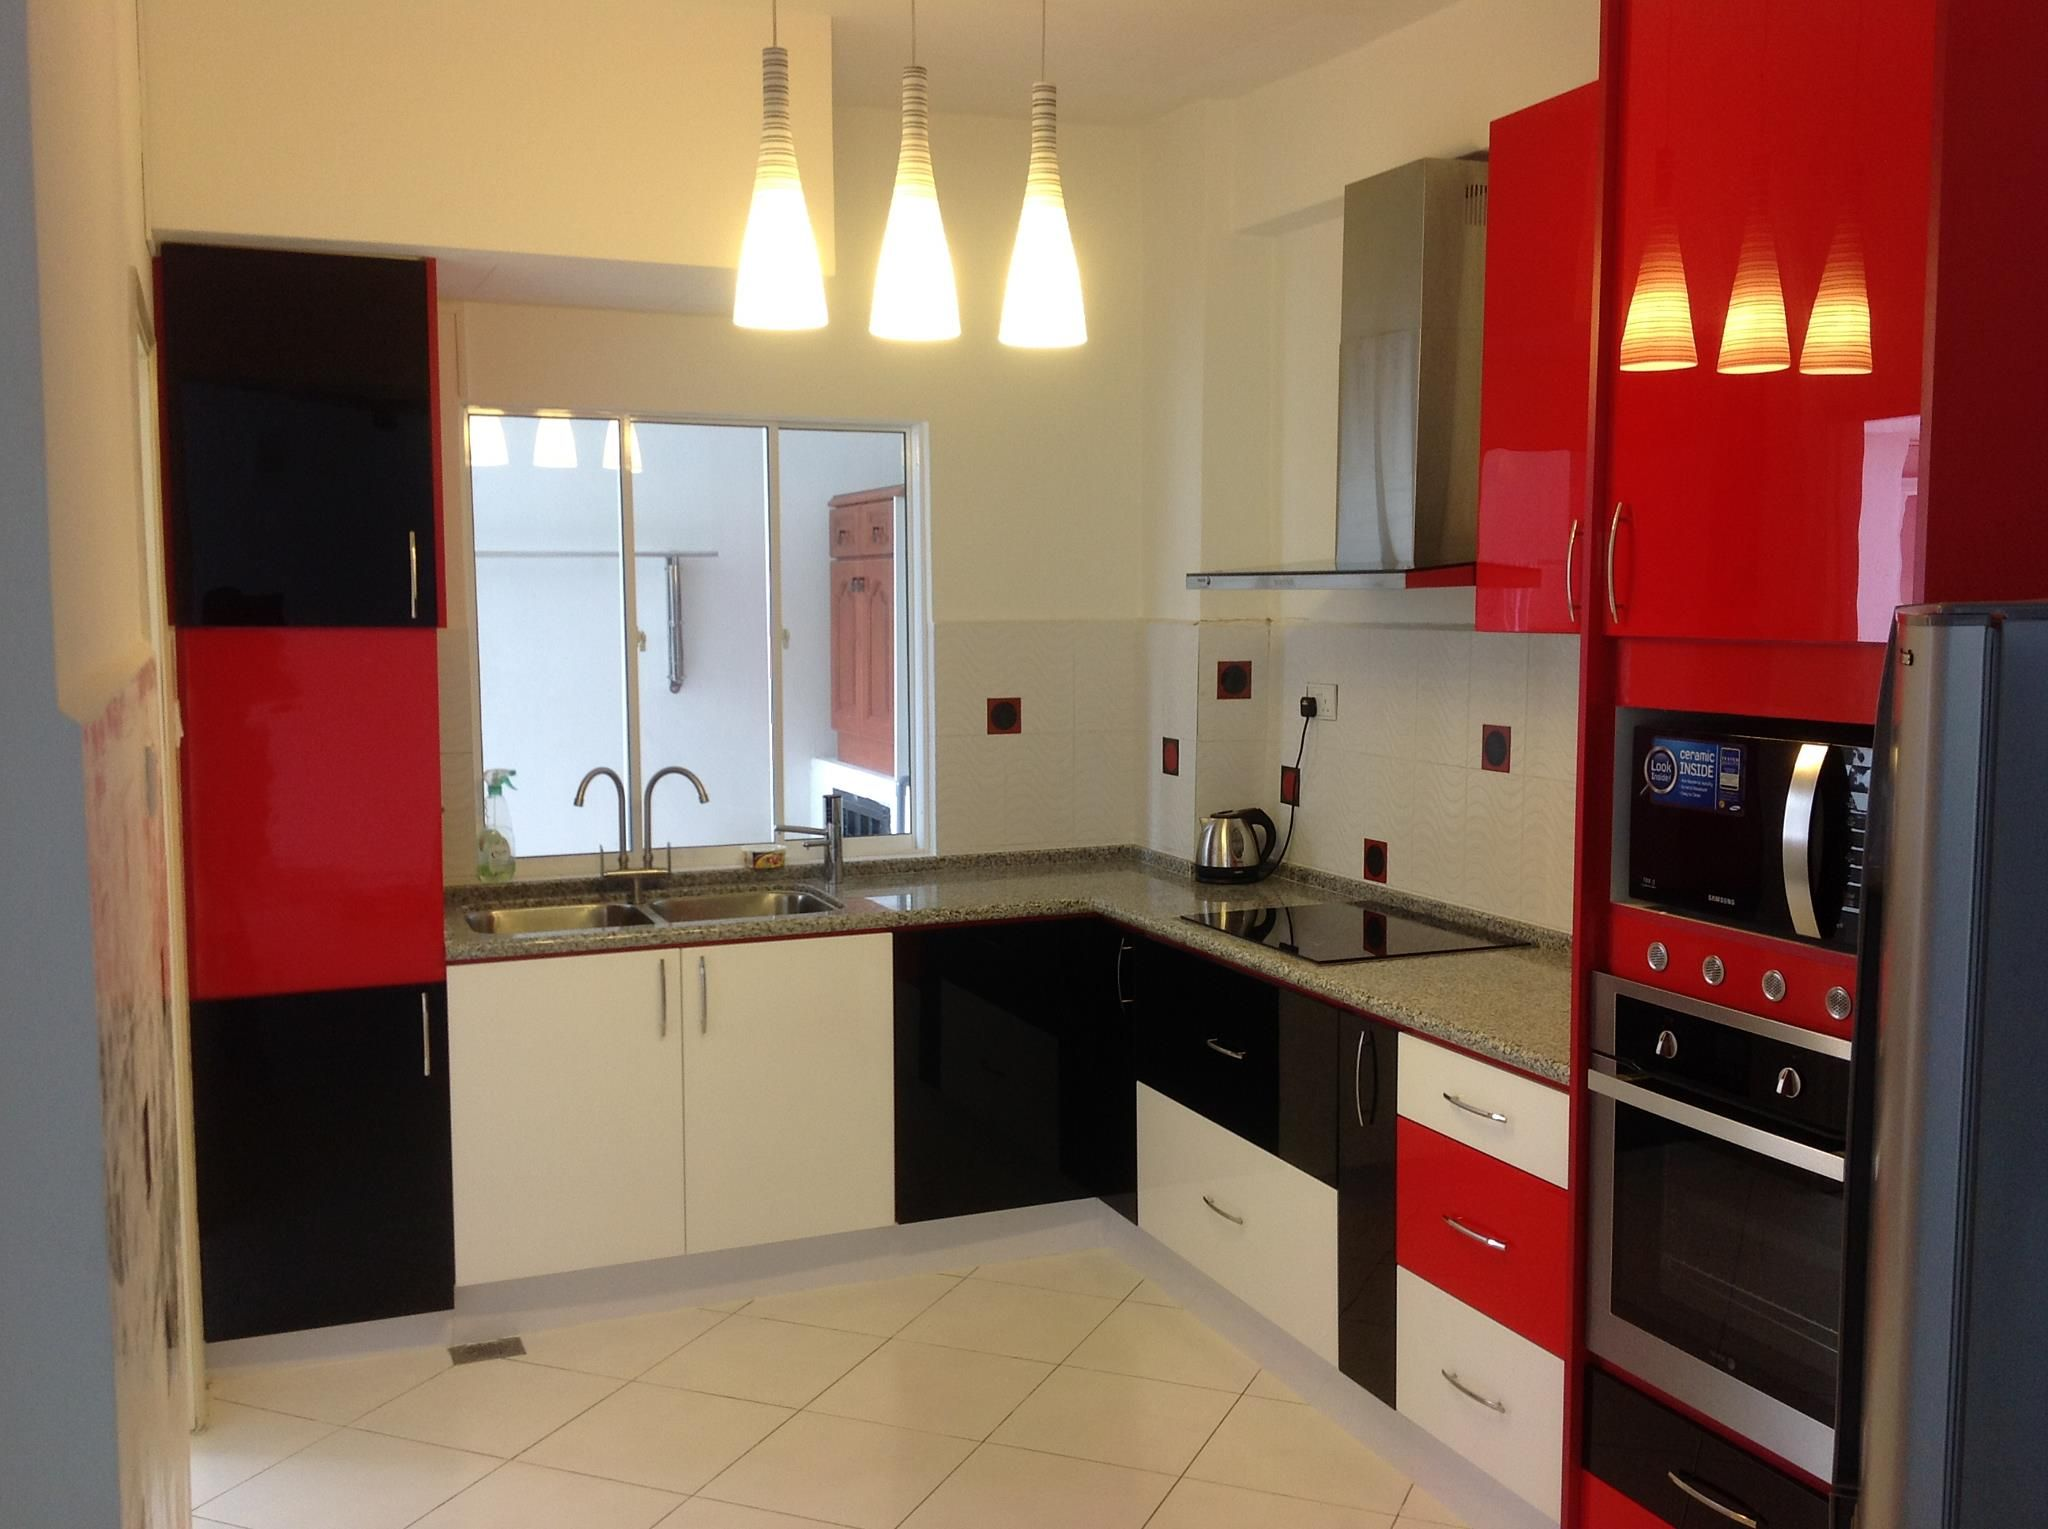 Kitchen Cabinet At Bukit Antarabangsa Ampang Red Black White Acrylic Material Door With Acrylic Kitchen Cabinets Kitchen Ideas Pinterest Big Lots Furniture